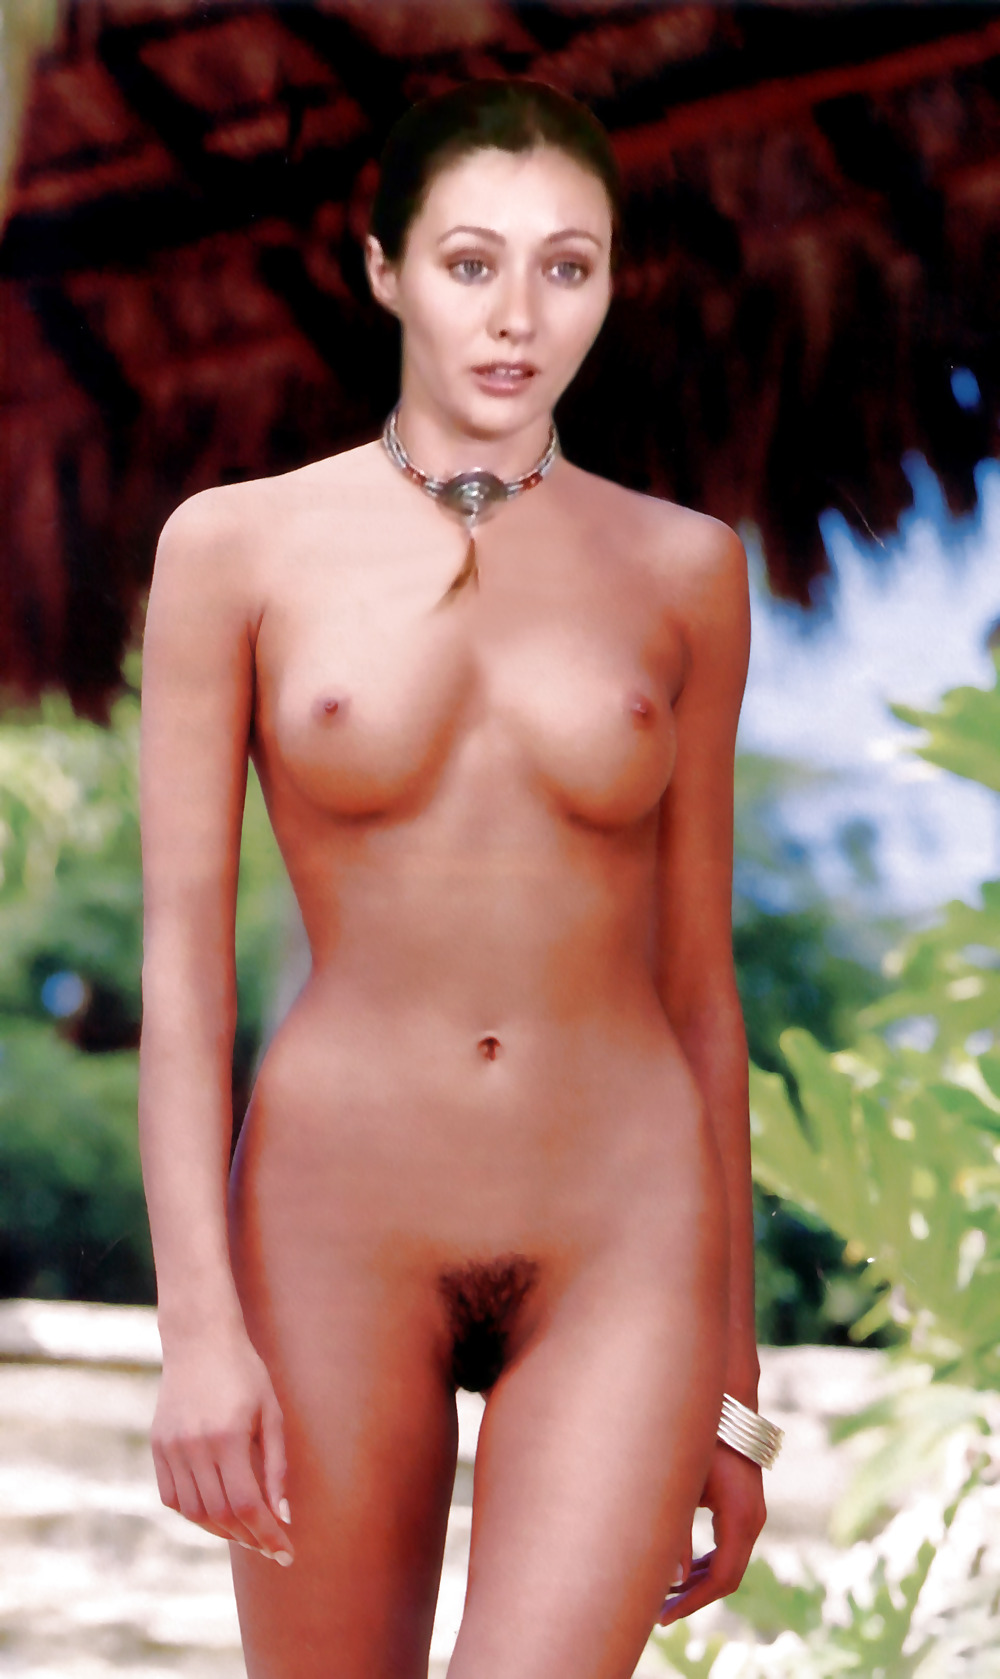 Shannen doherty fake nude pics — photo 13